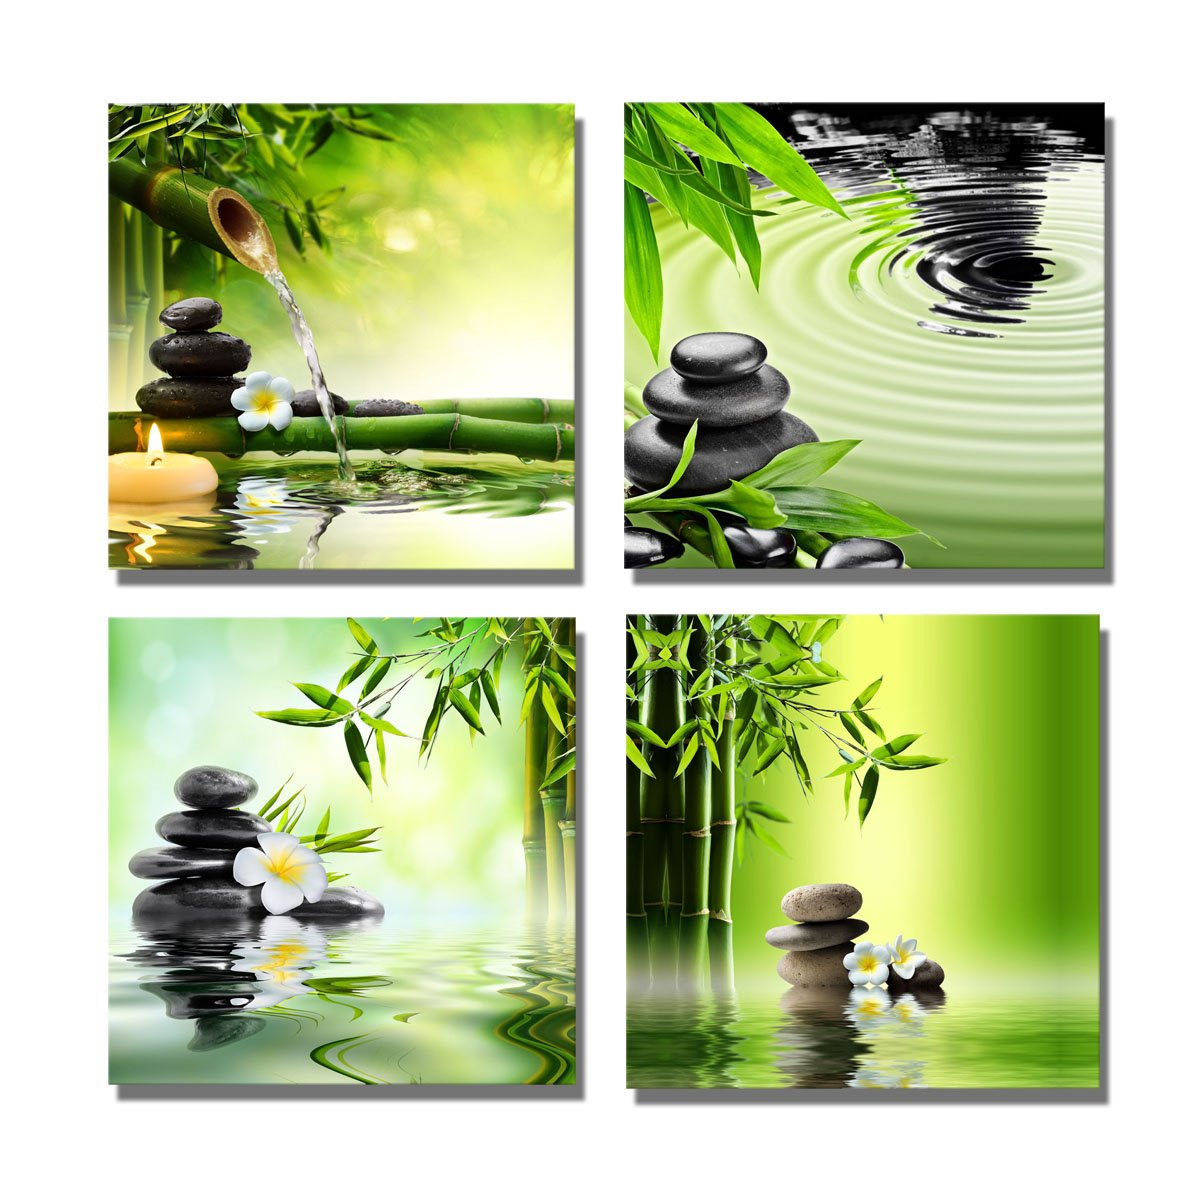 Yang Hong Yu Canvas Prints Stones Candle and Bamboo on Water SPA Theme Photo on Canvas Wall Art Framed Modern Decor Paintings Giclee Artwork for Home Decoration 12x12inch